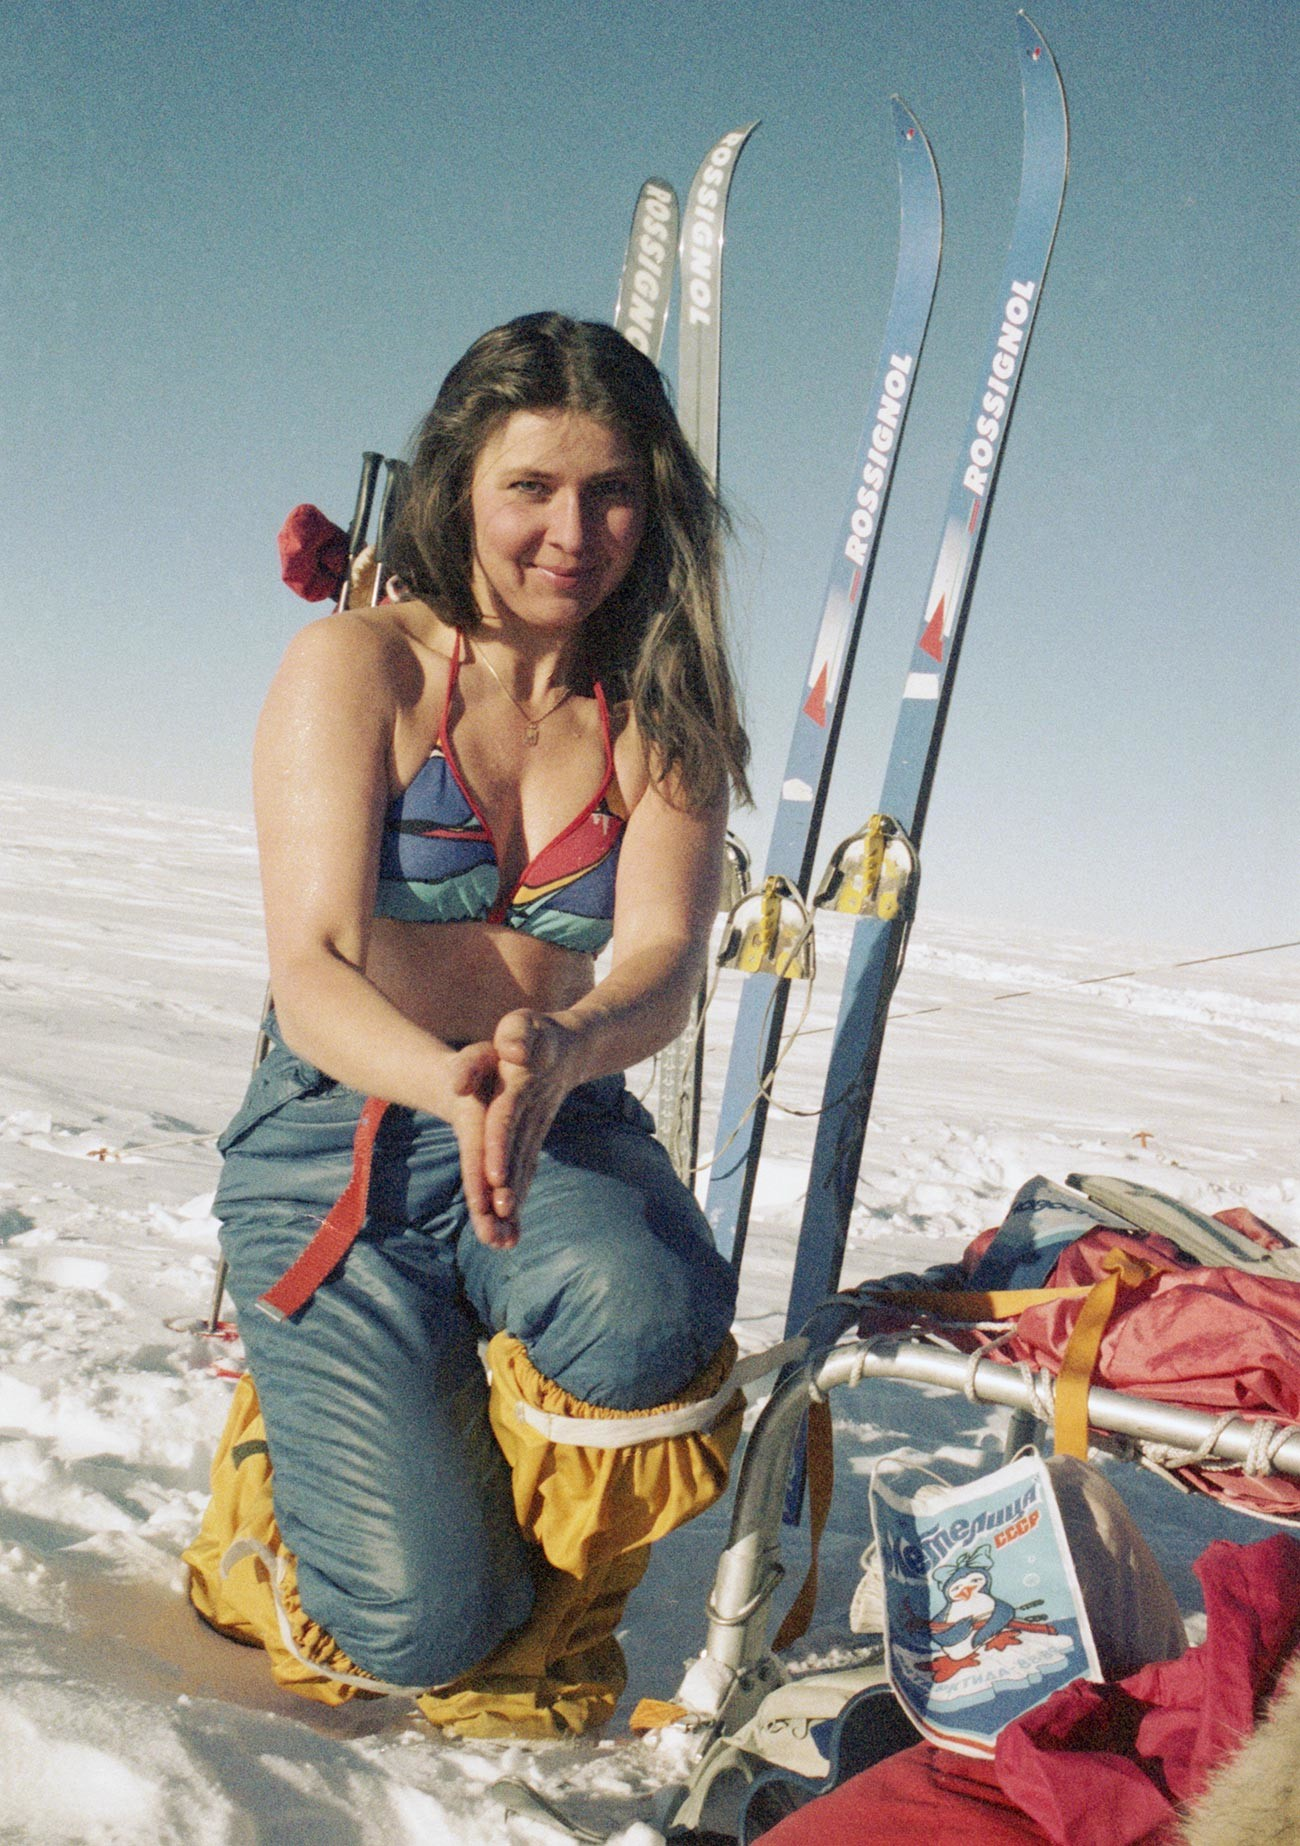 A Metelitsa member in the Arctic.